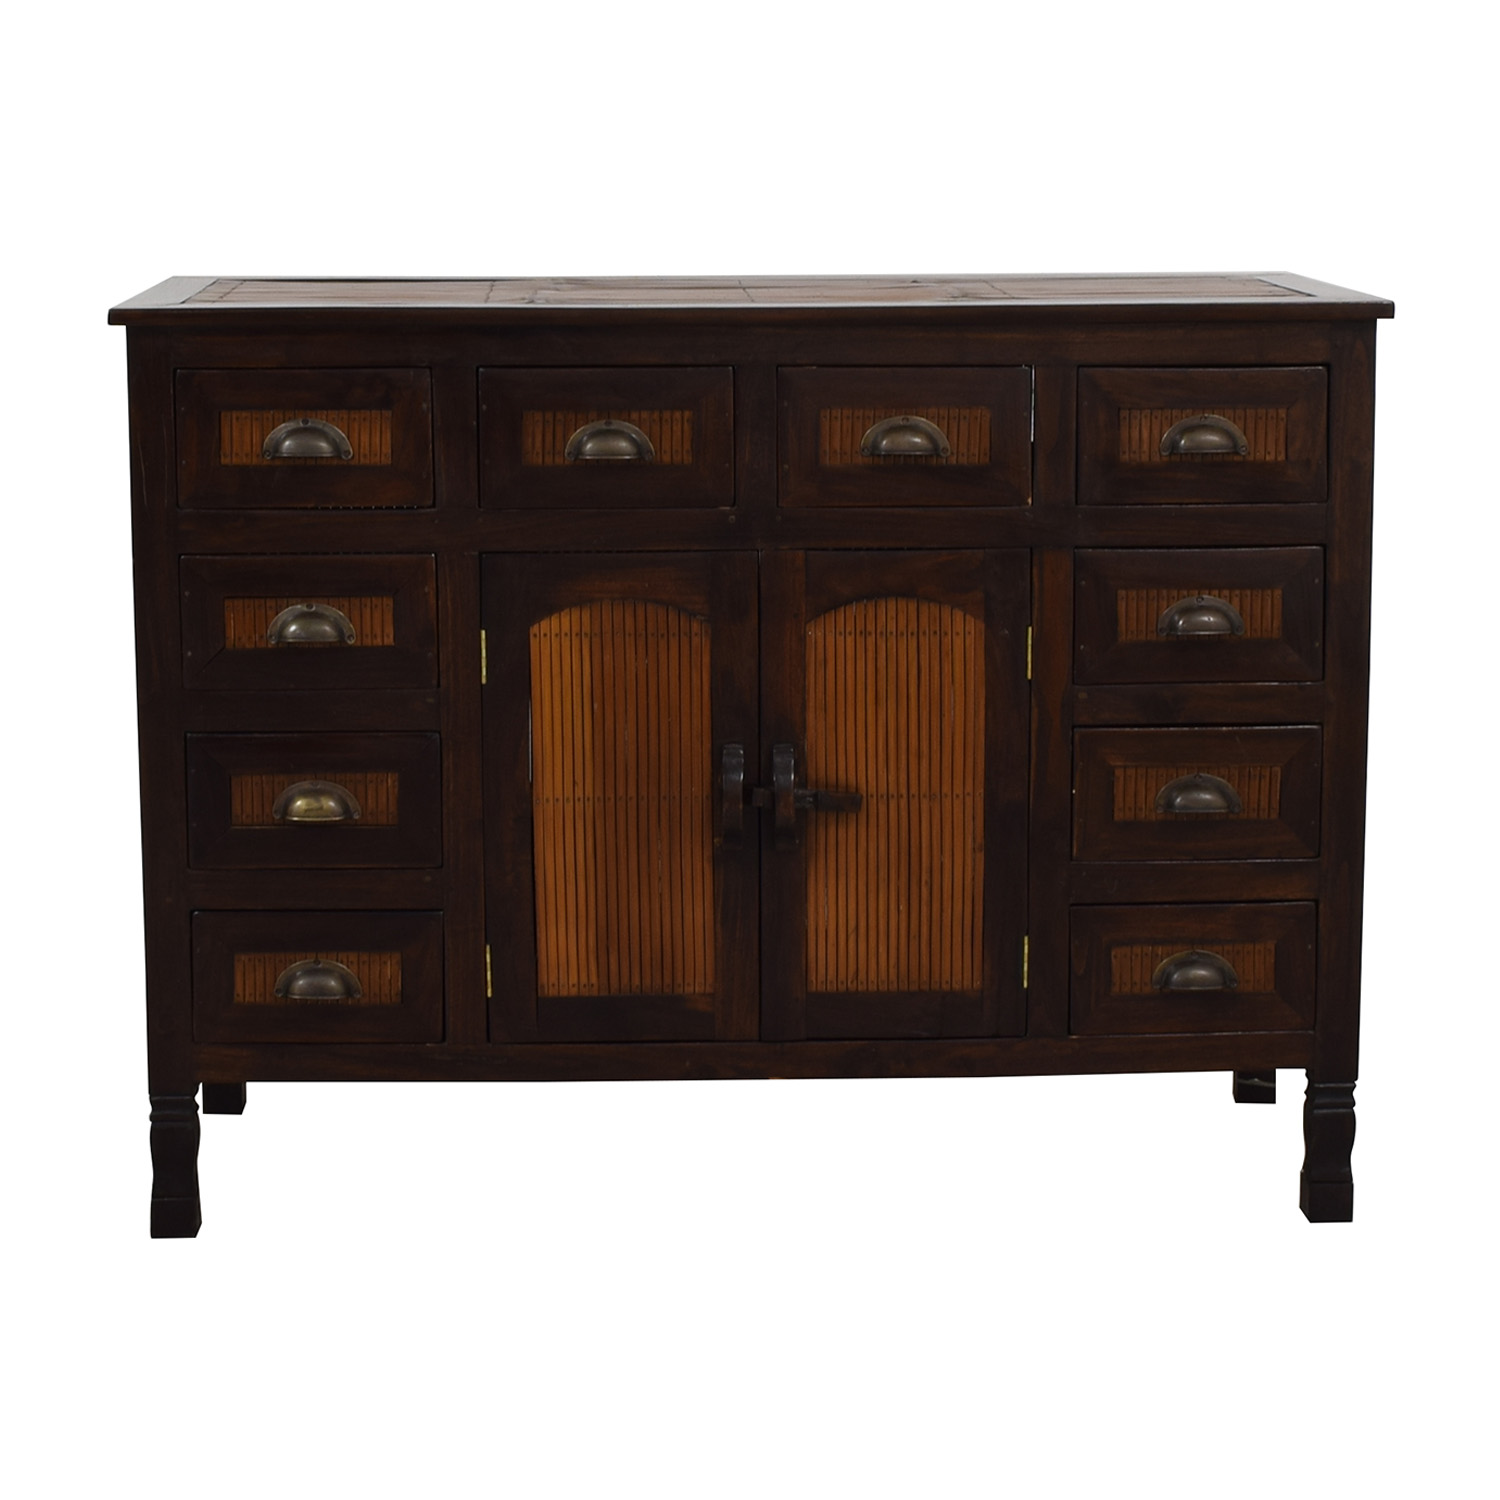 shop From the Source From The Source Commode online